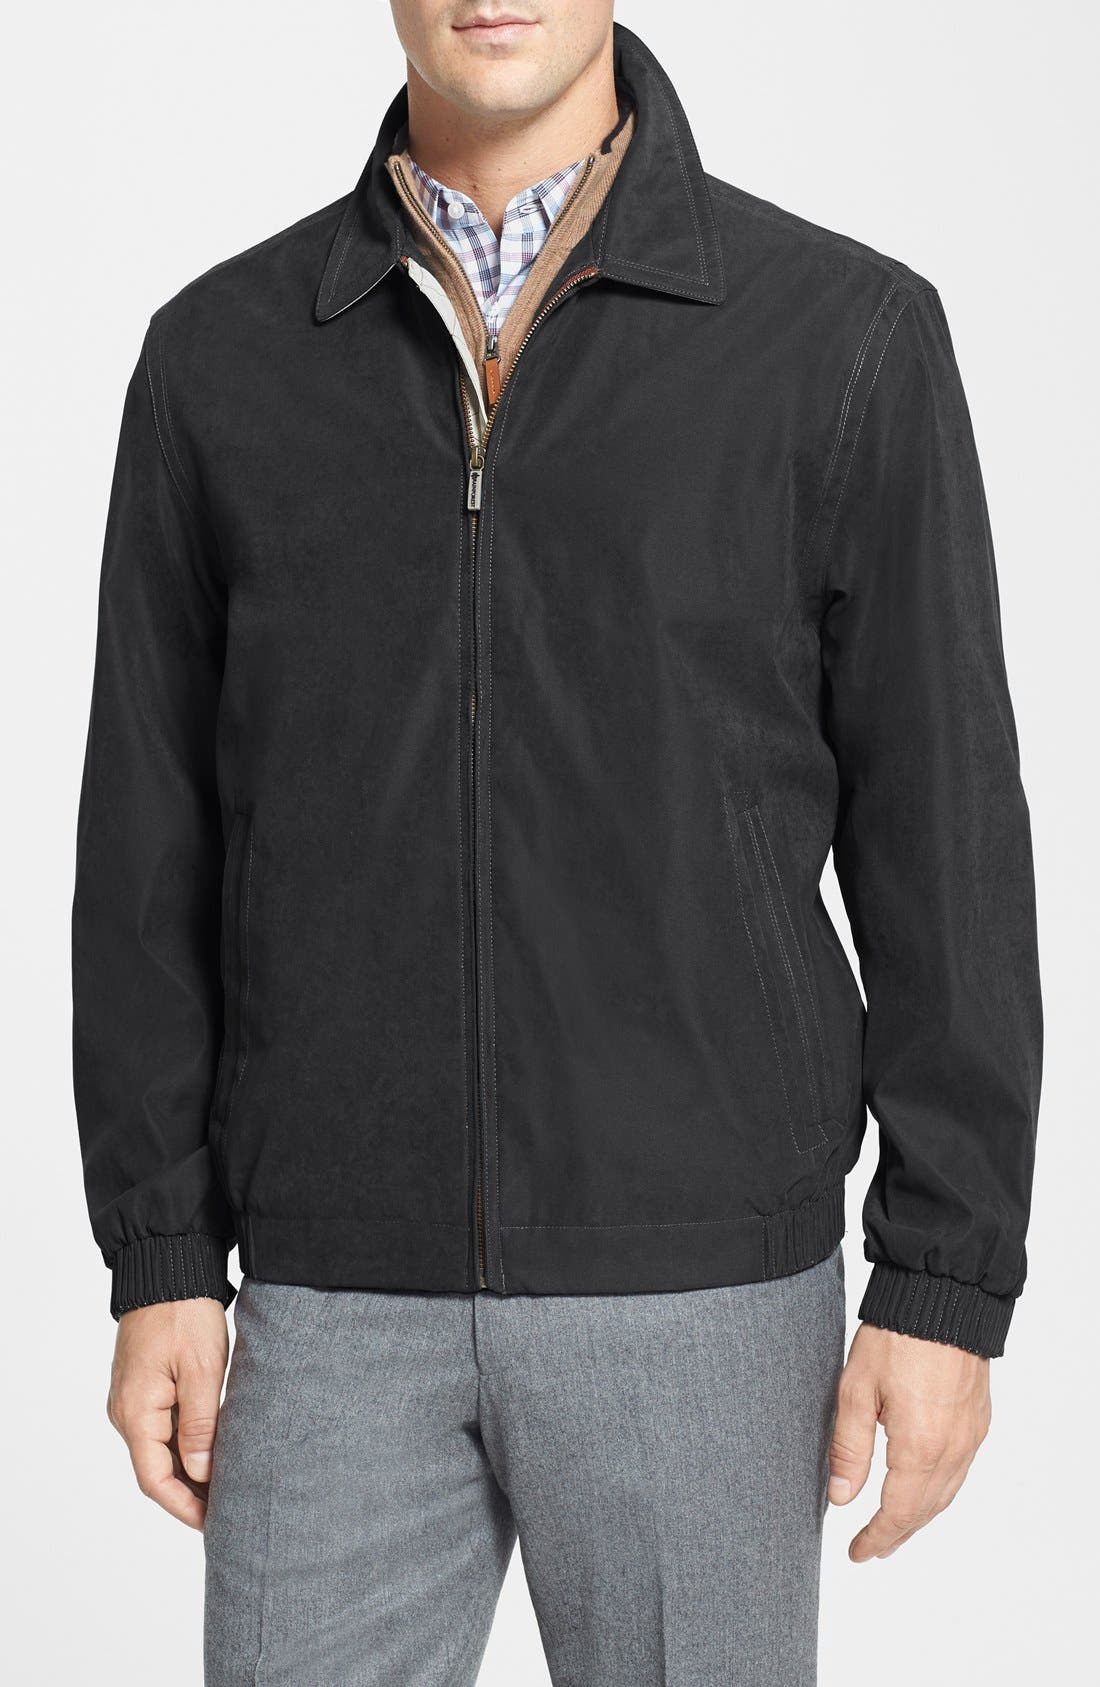 'Microseta' Lightweight Golf Jacket,                         Main,                         color,